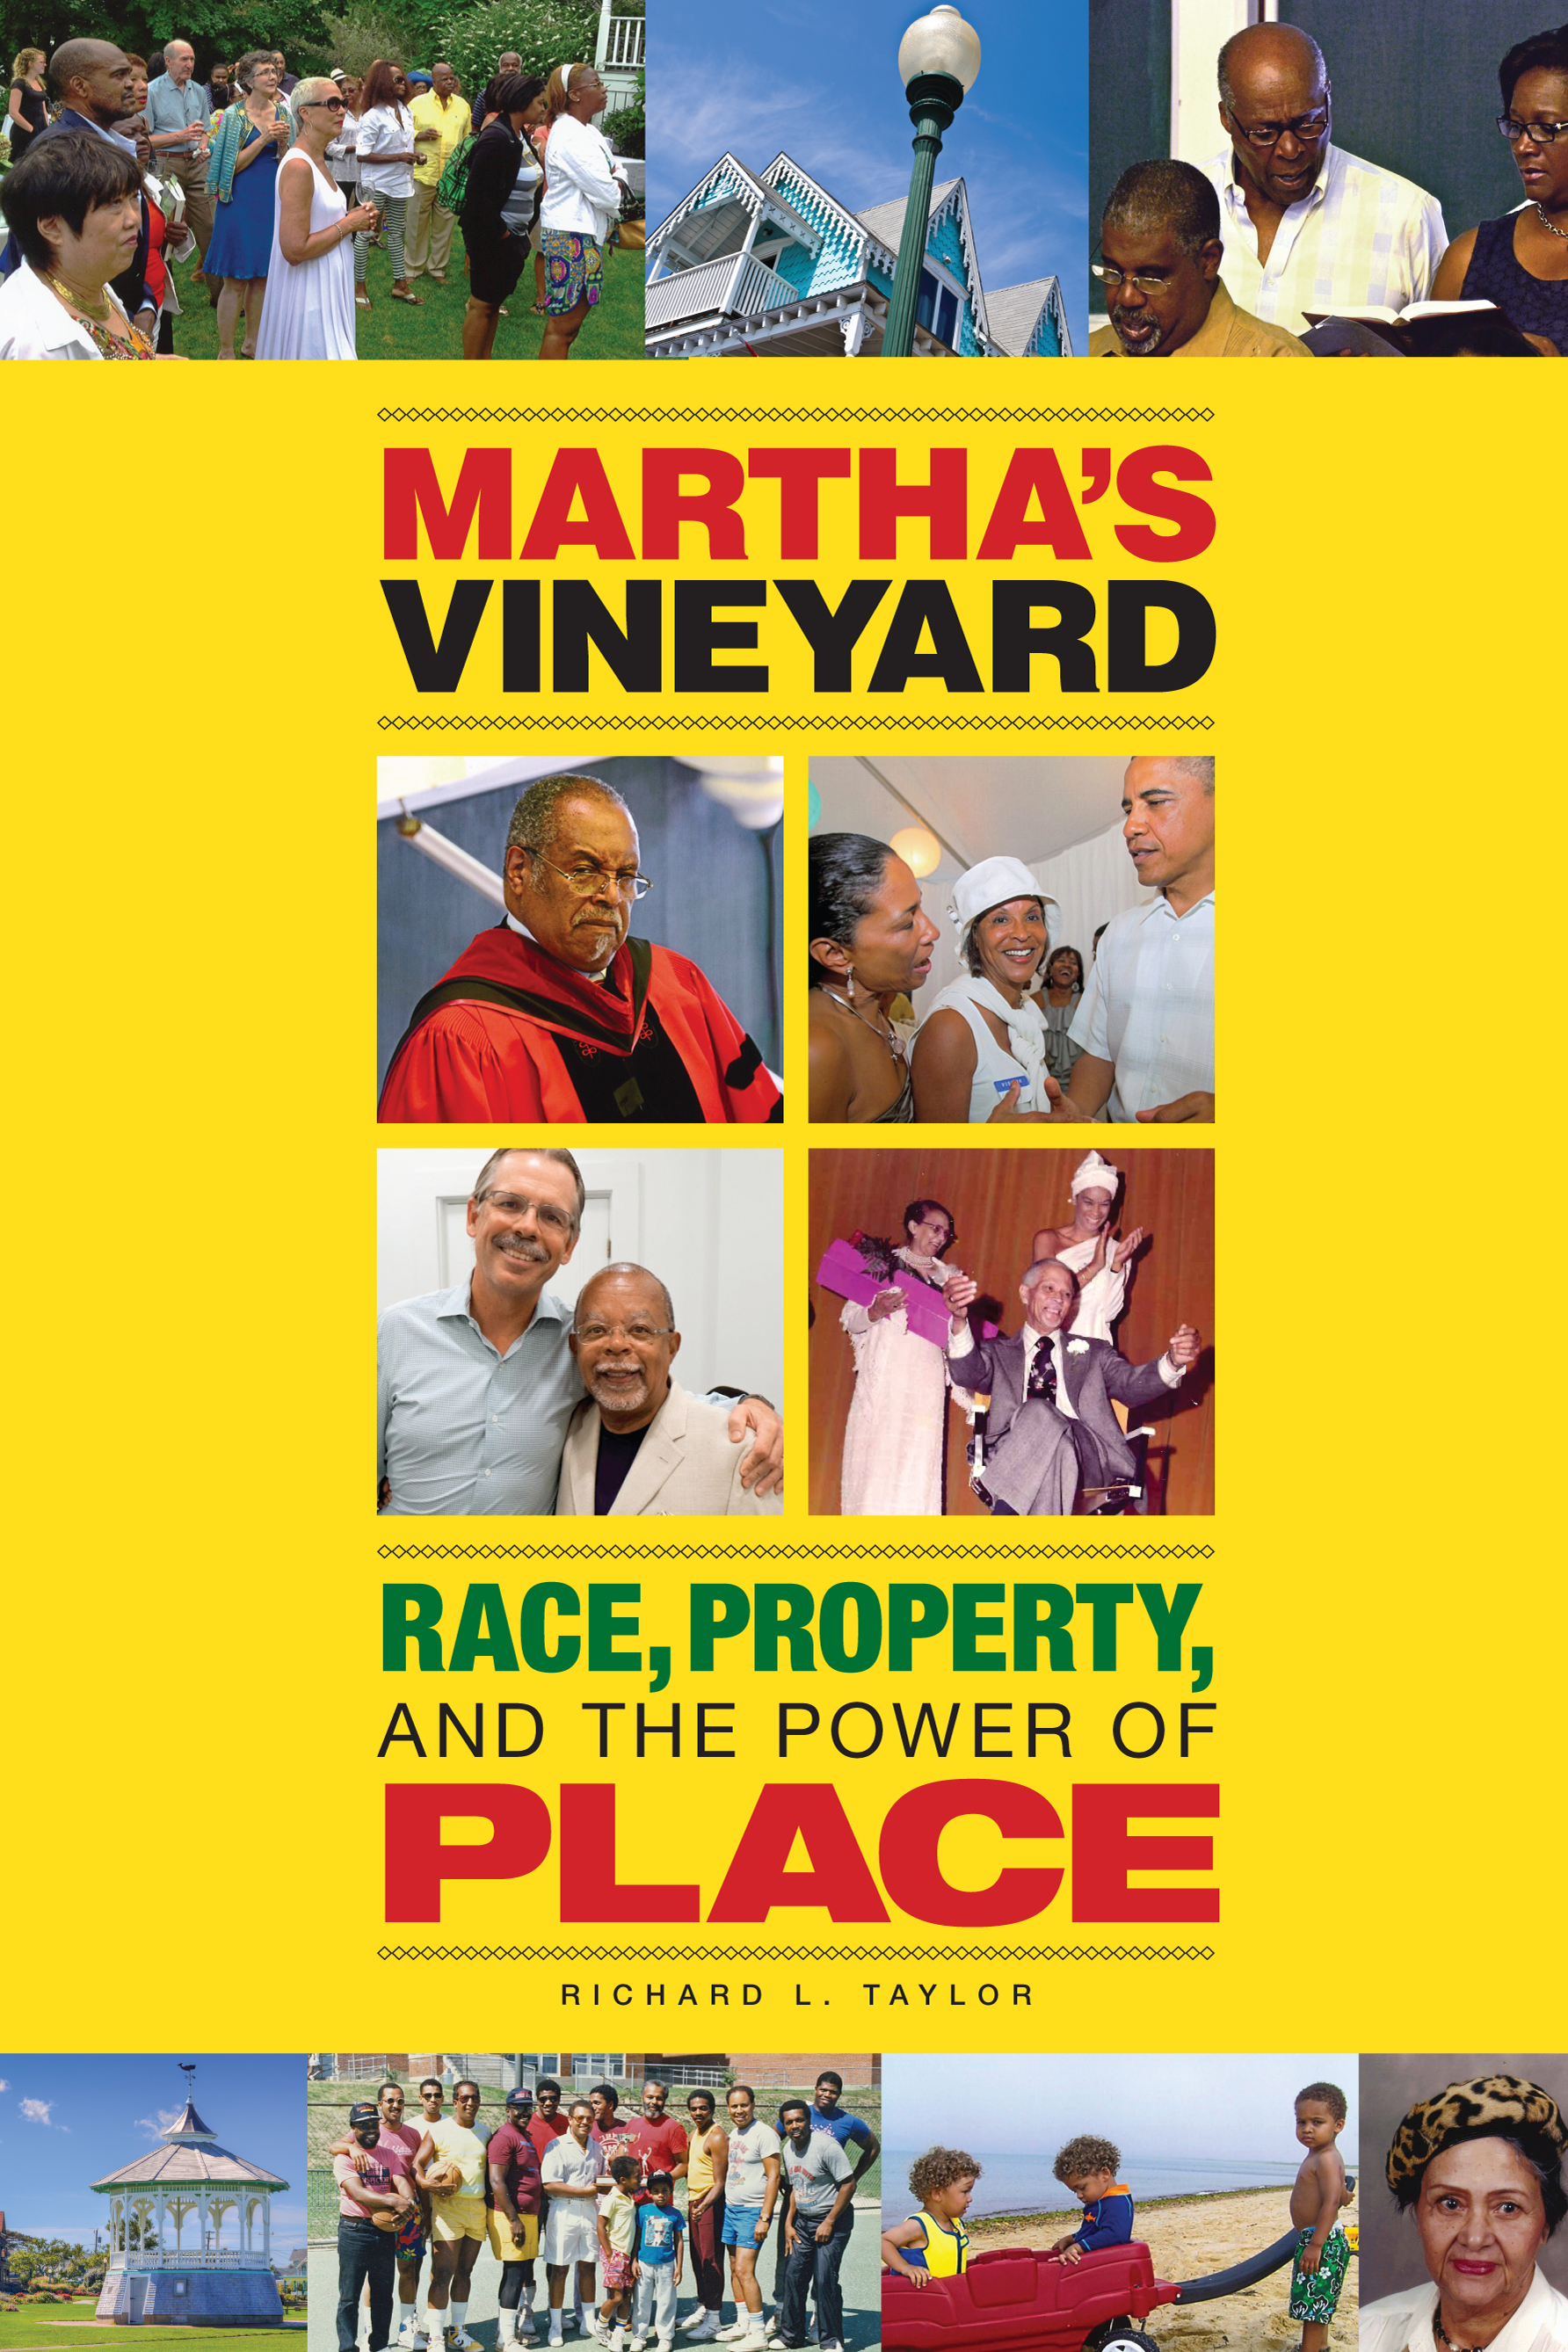 Martha's Vineyard: Race, Property and the Power of Place